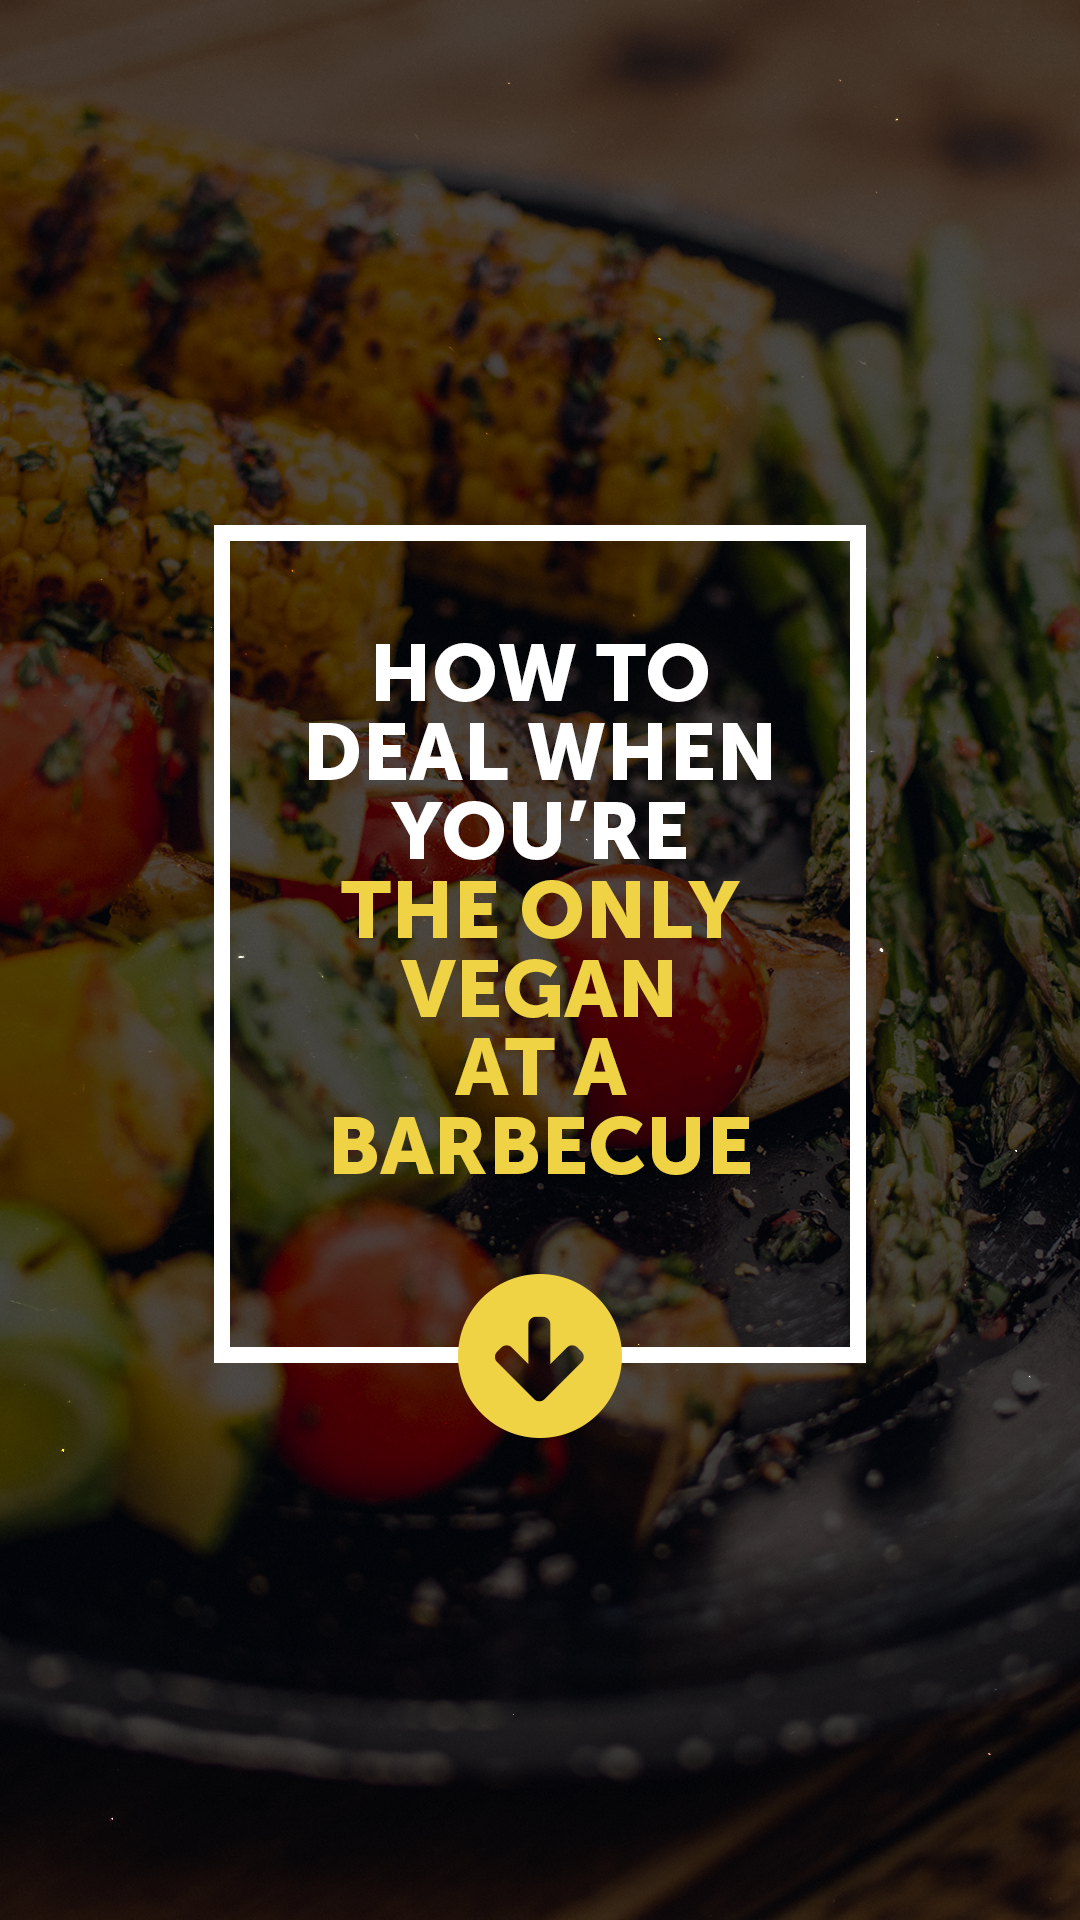 How to Deal When You're the Only Vegan at a Barbecue